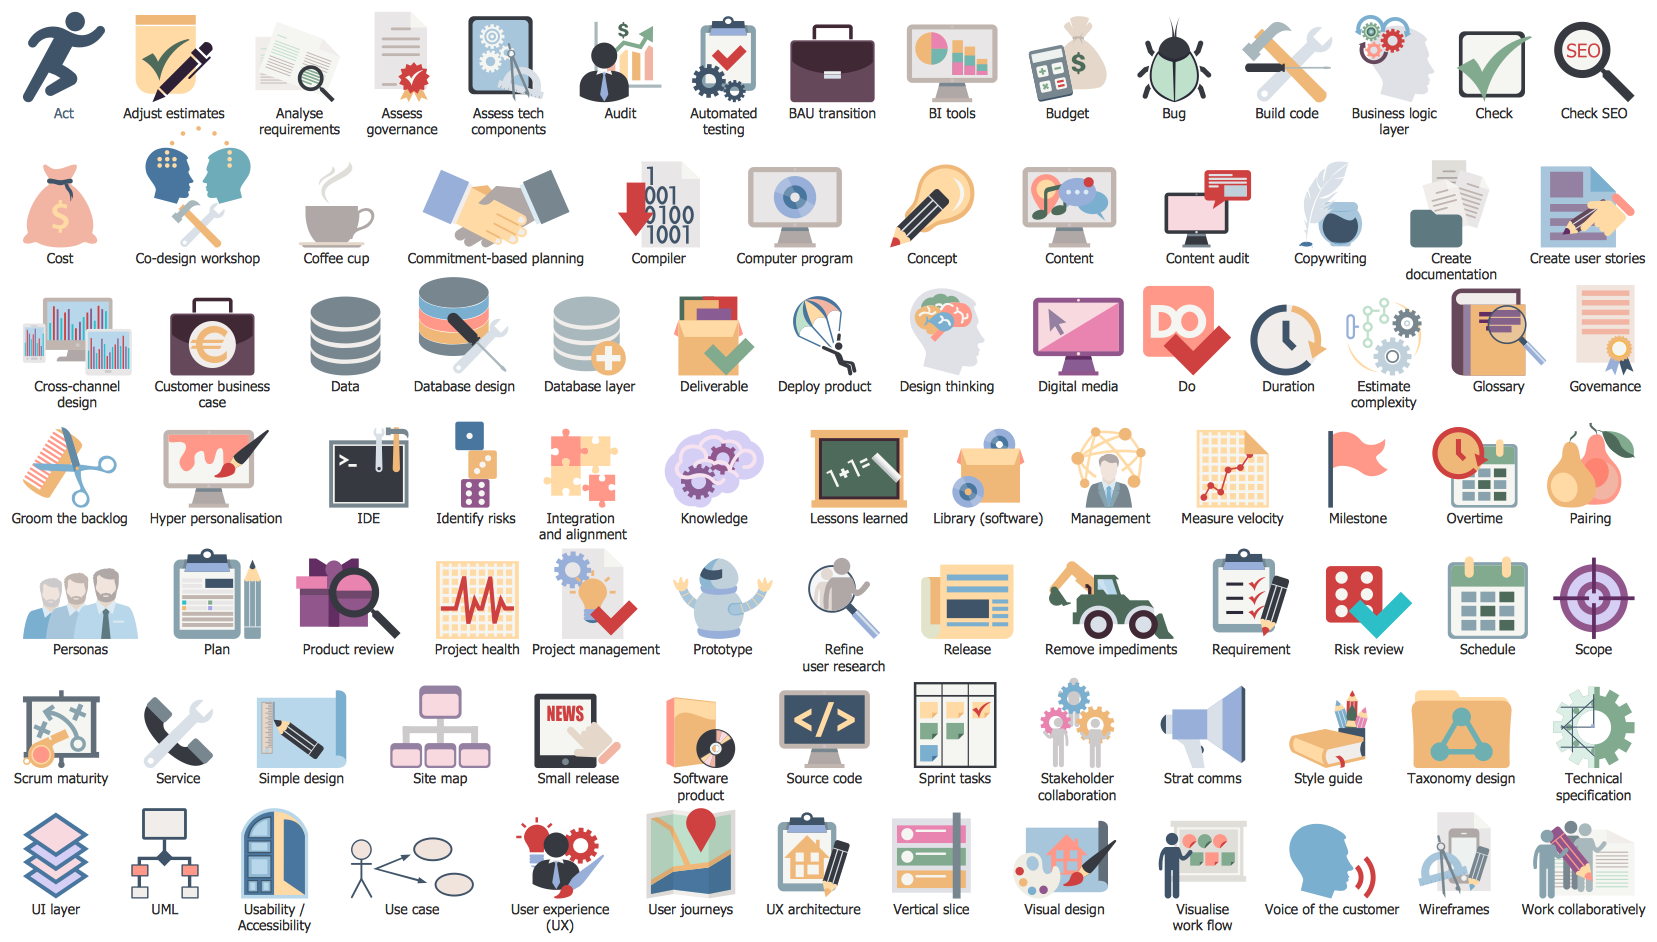 Scrum logo clipart picture royalty free library Design Elements — Scrum Clipart. Find more in #Scrum ... picture royalty free library